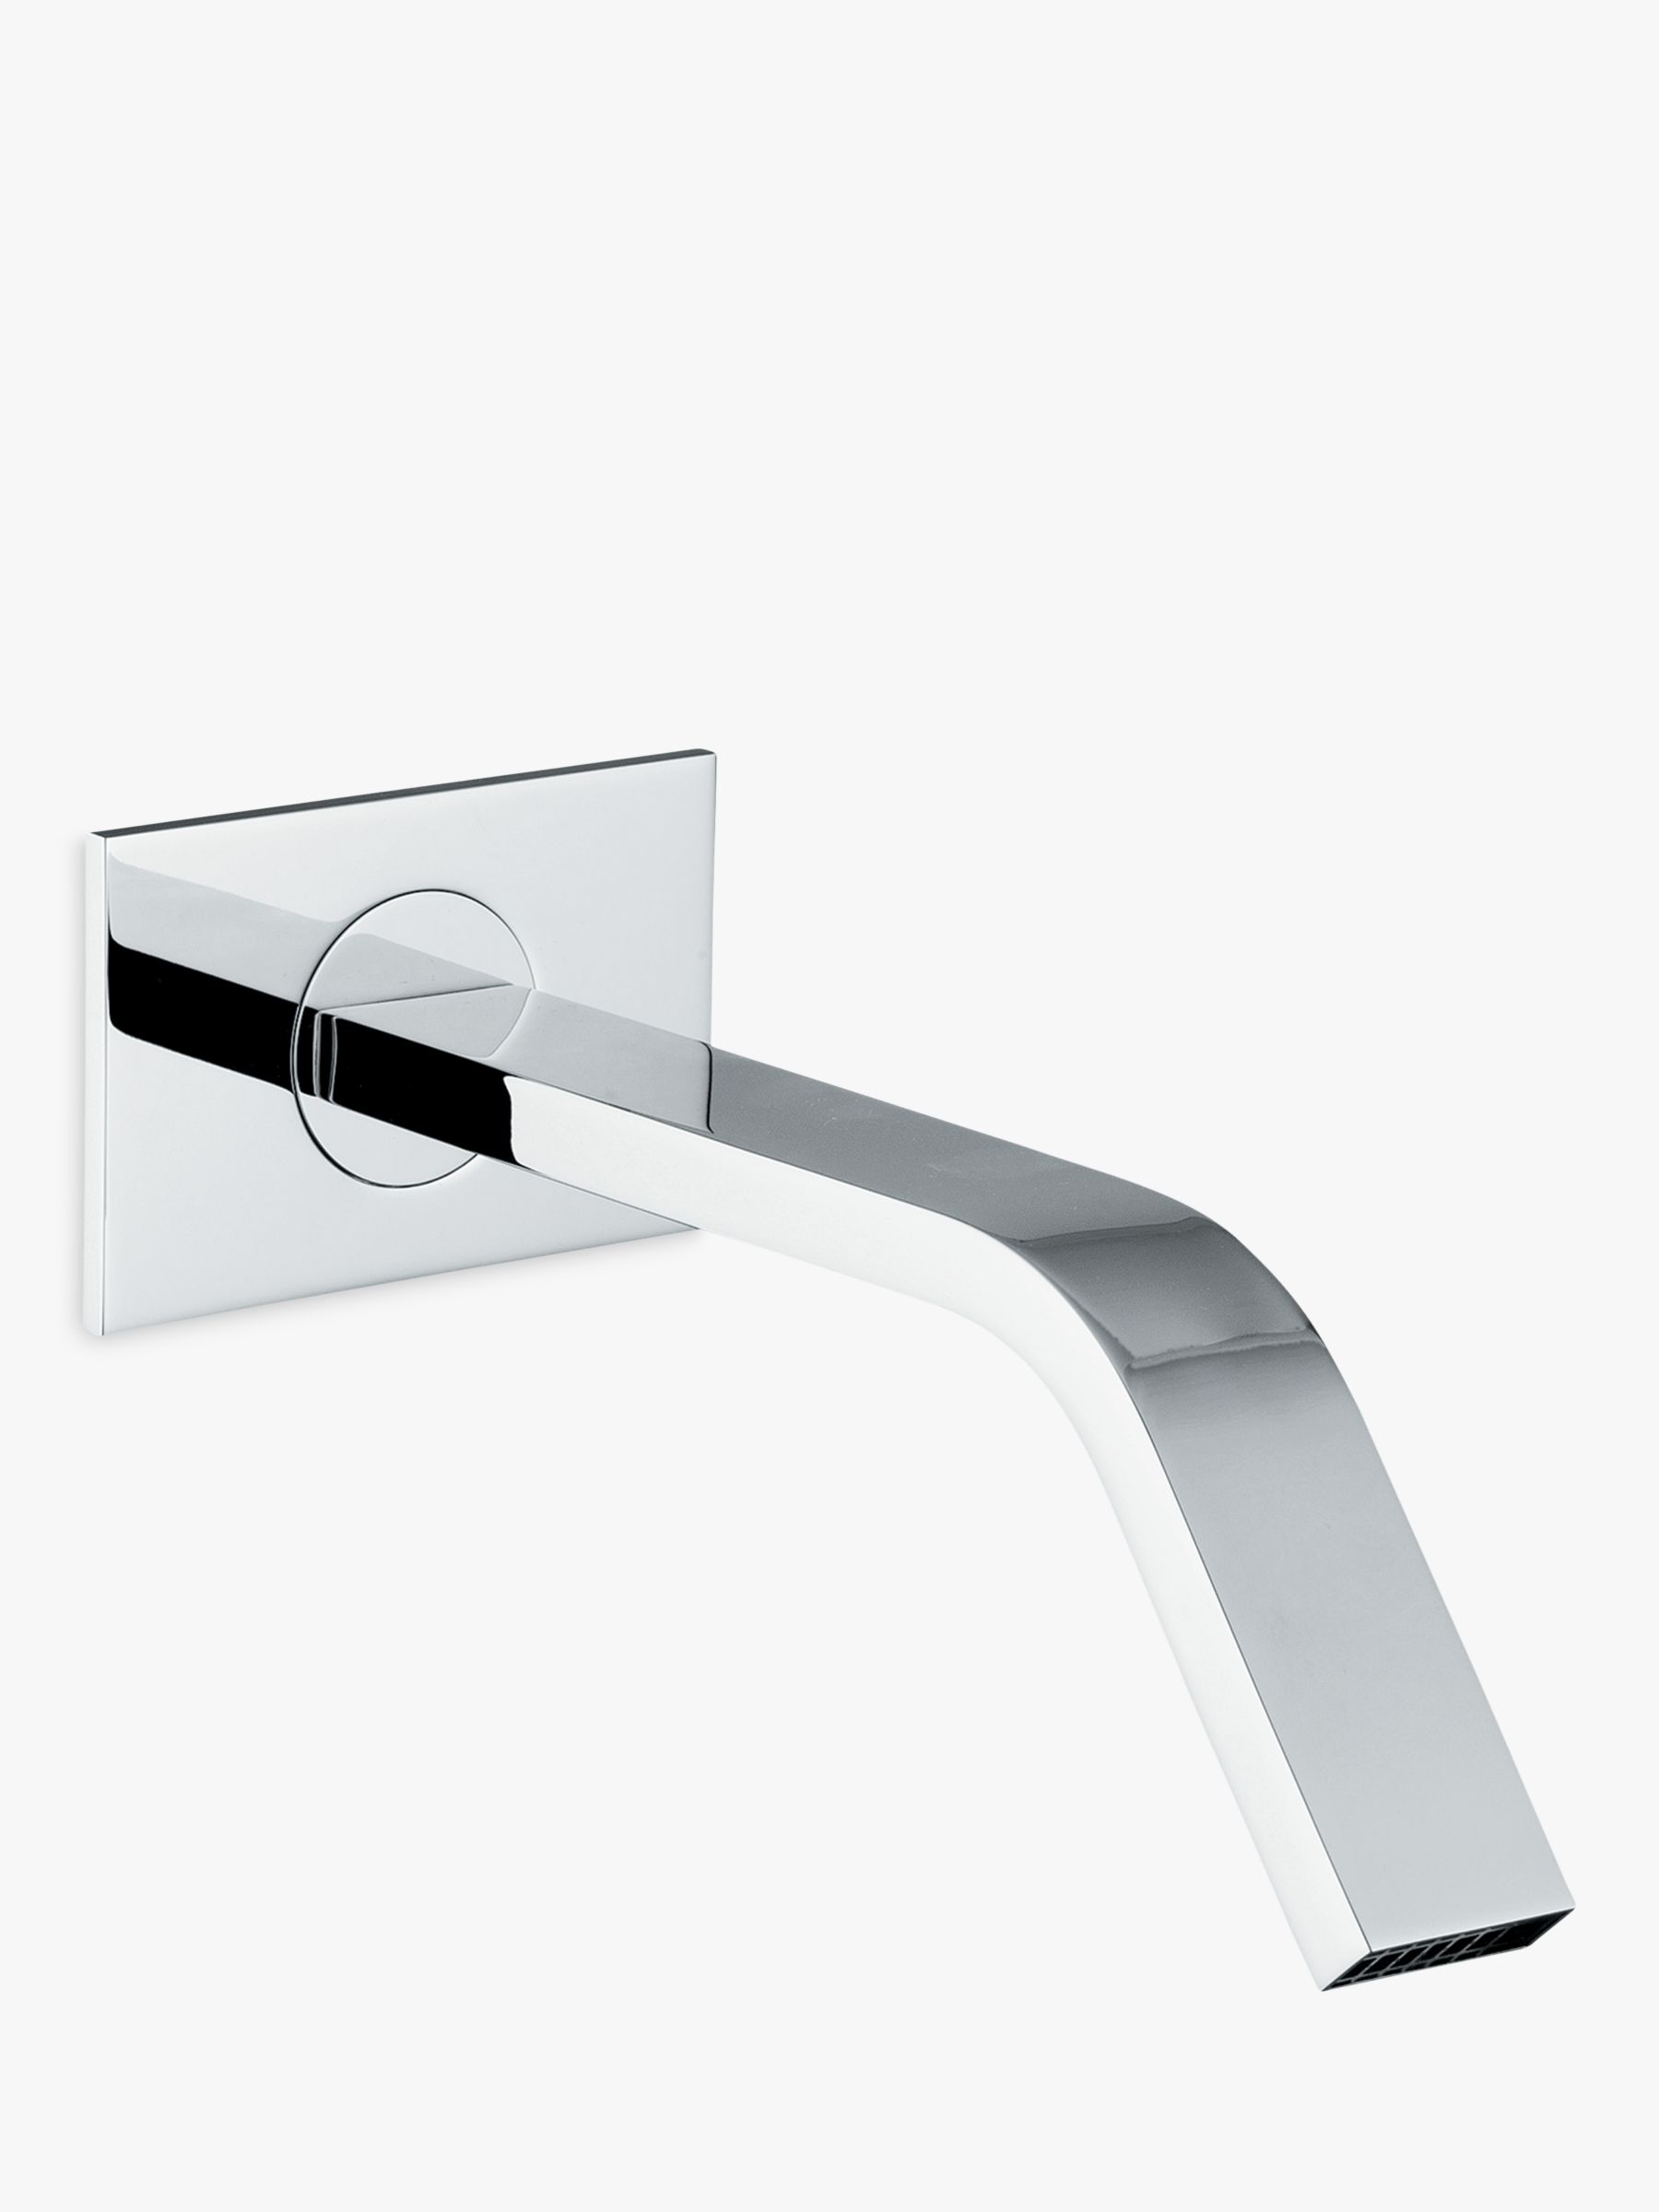 Abode Abode Euphoria Square Wall Mounted Bath Spout Tap